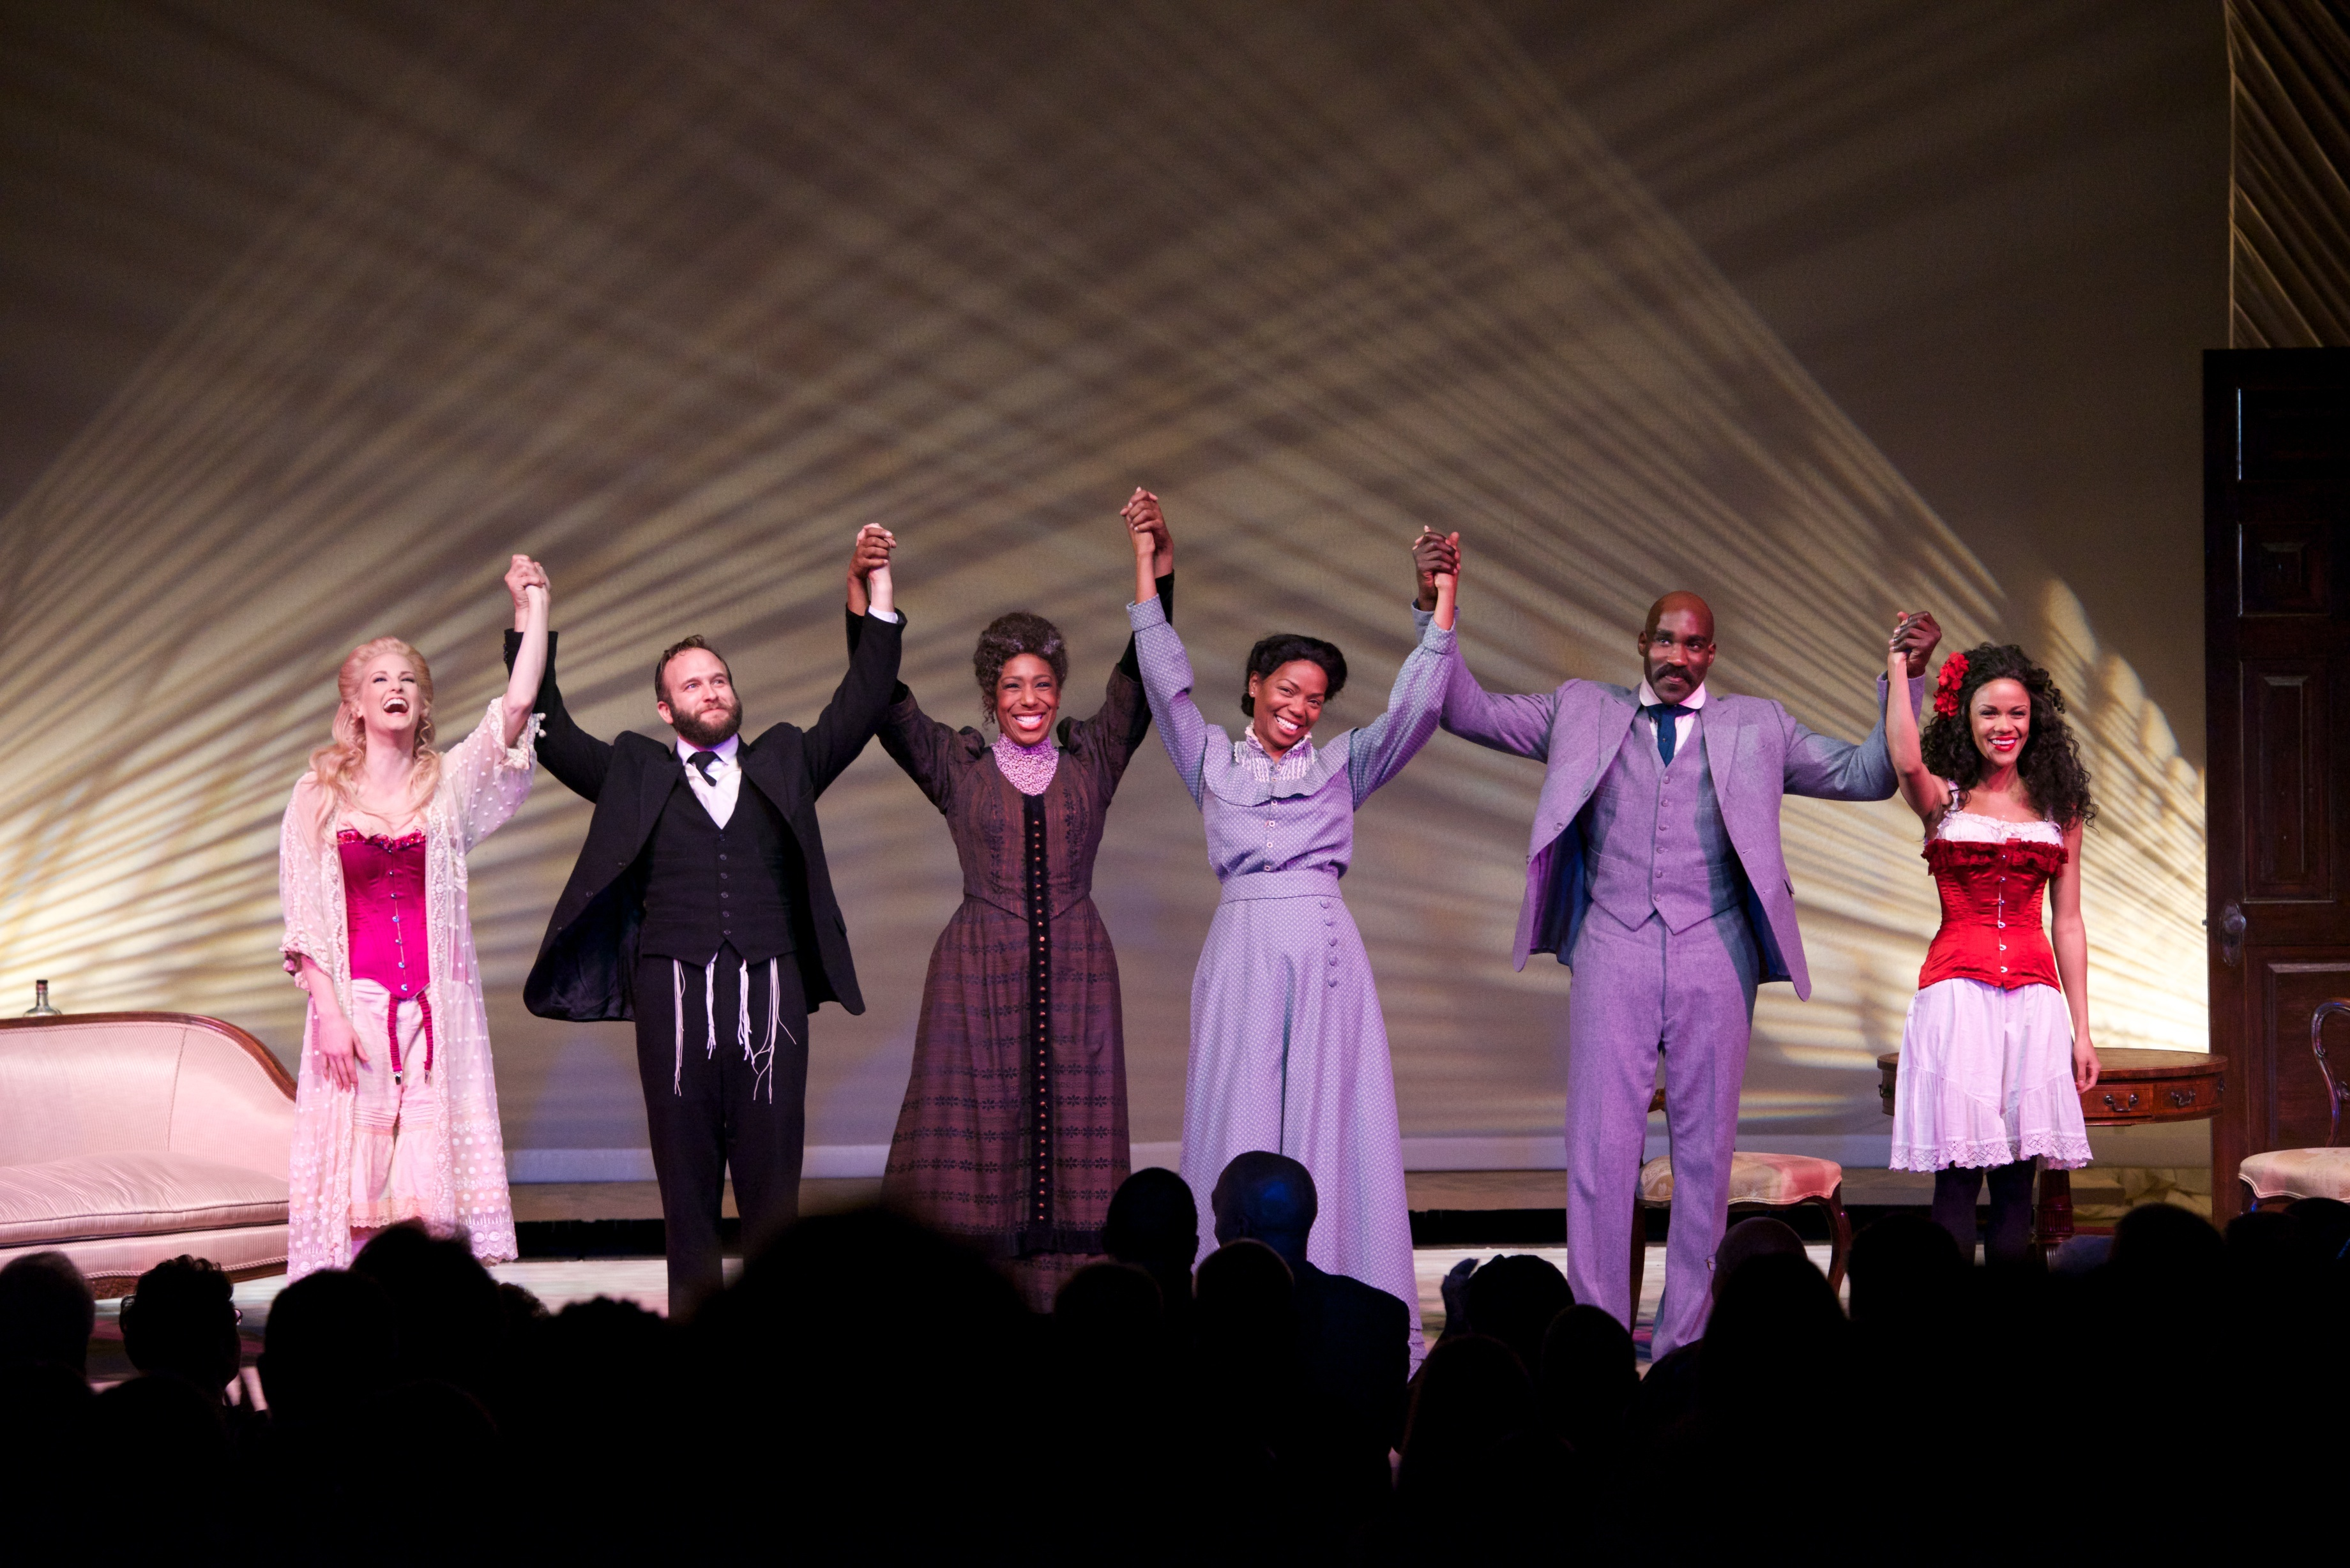 Cast of The Pasadena Playhouse production of Intimate Apparel (L to R) Angel Reda, Adam J. Smith, Dawnn Lewis, Vanessa A. Wiliiams, David St. Louis, and Kristy Johnson. (Photo Credit: Earl Gipson)